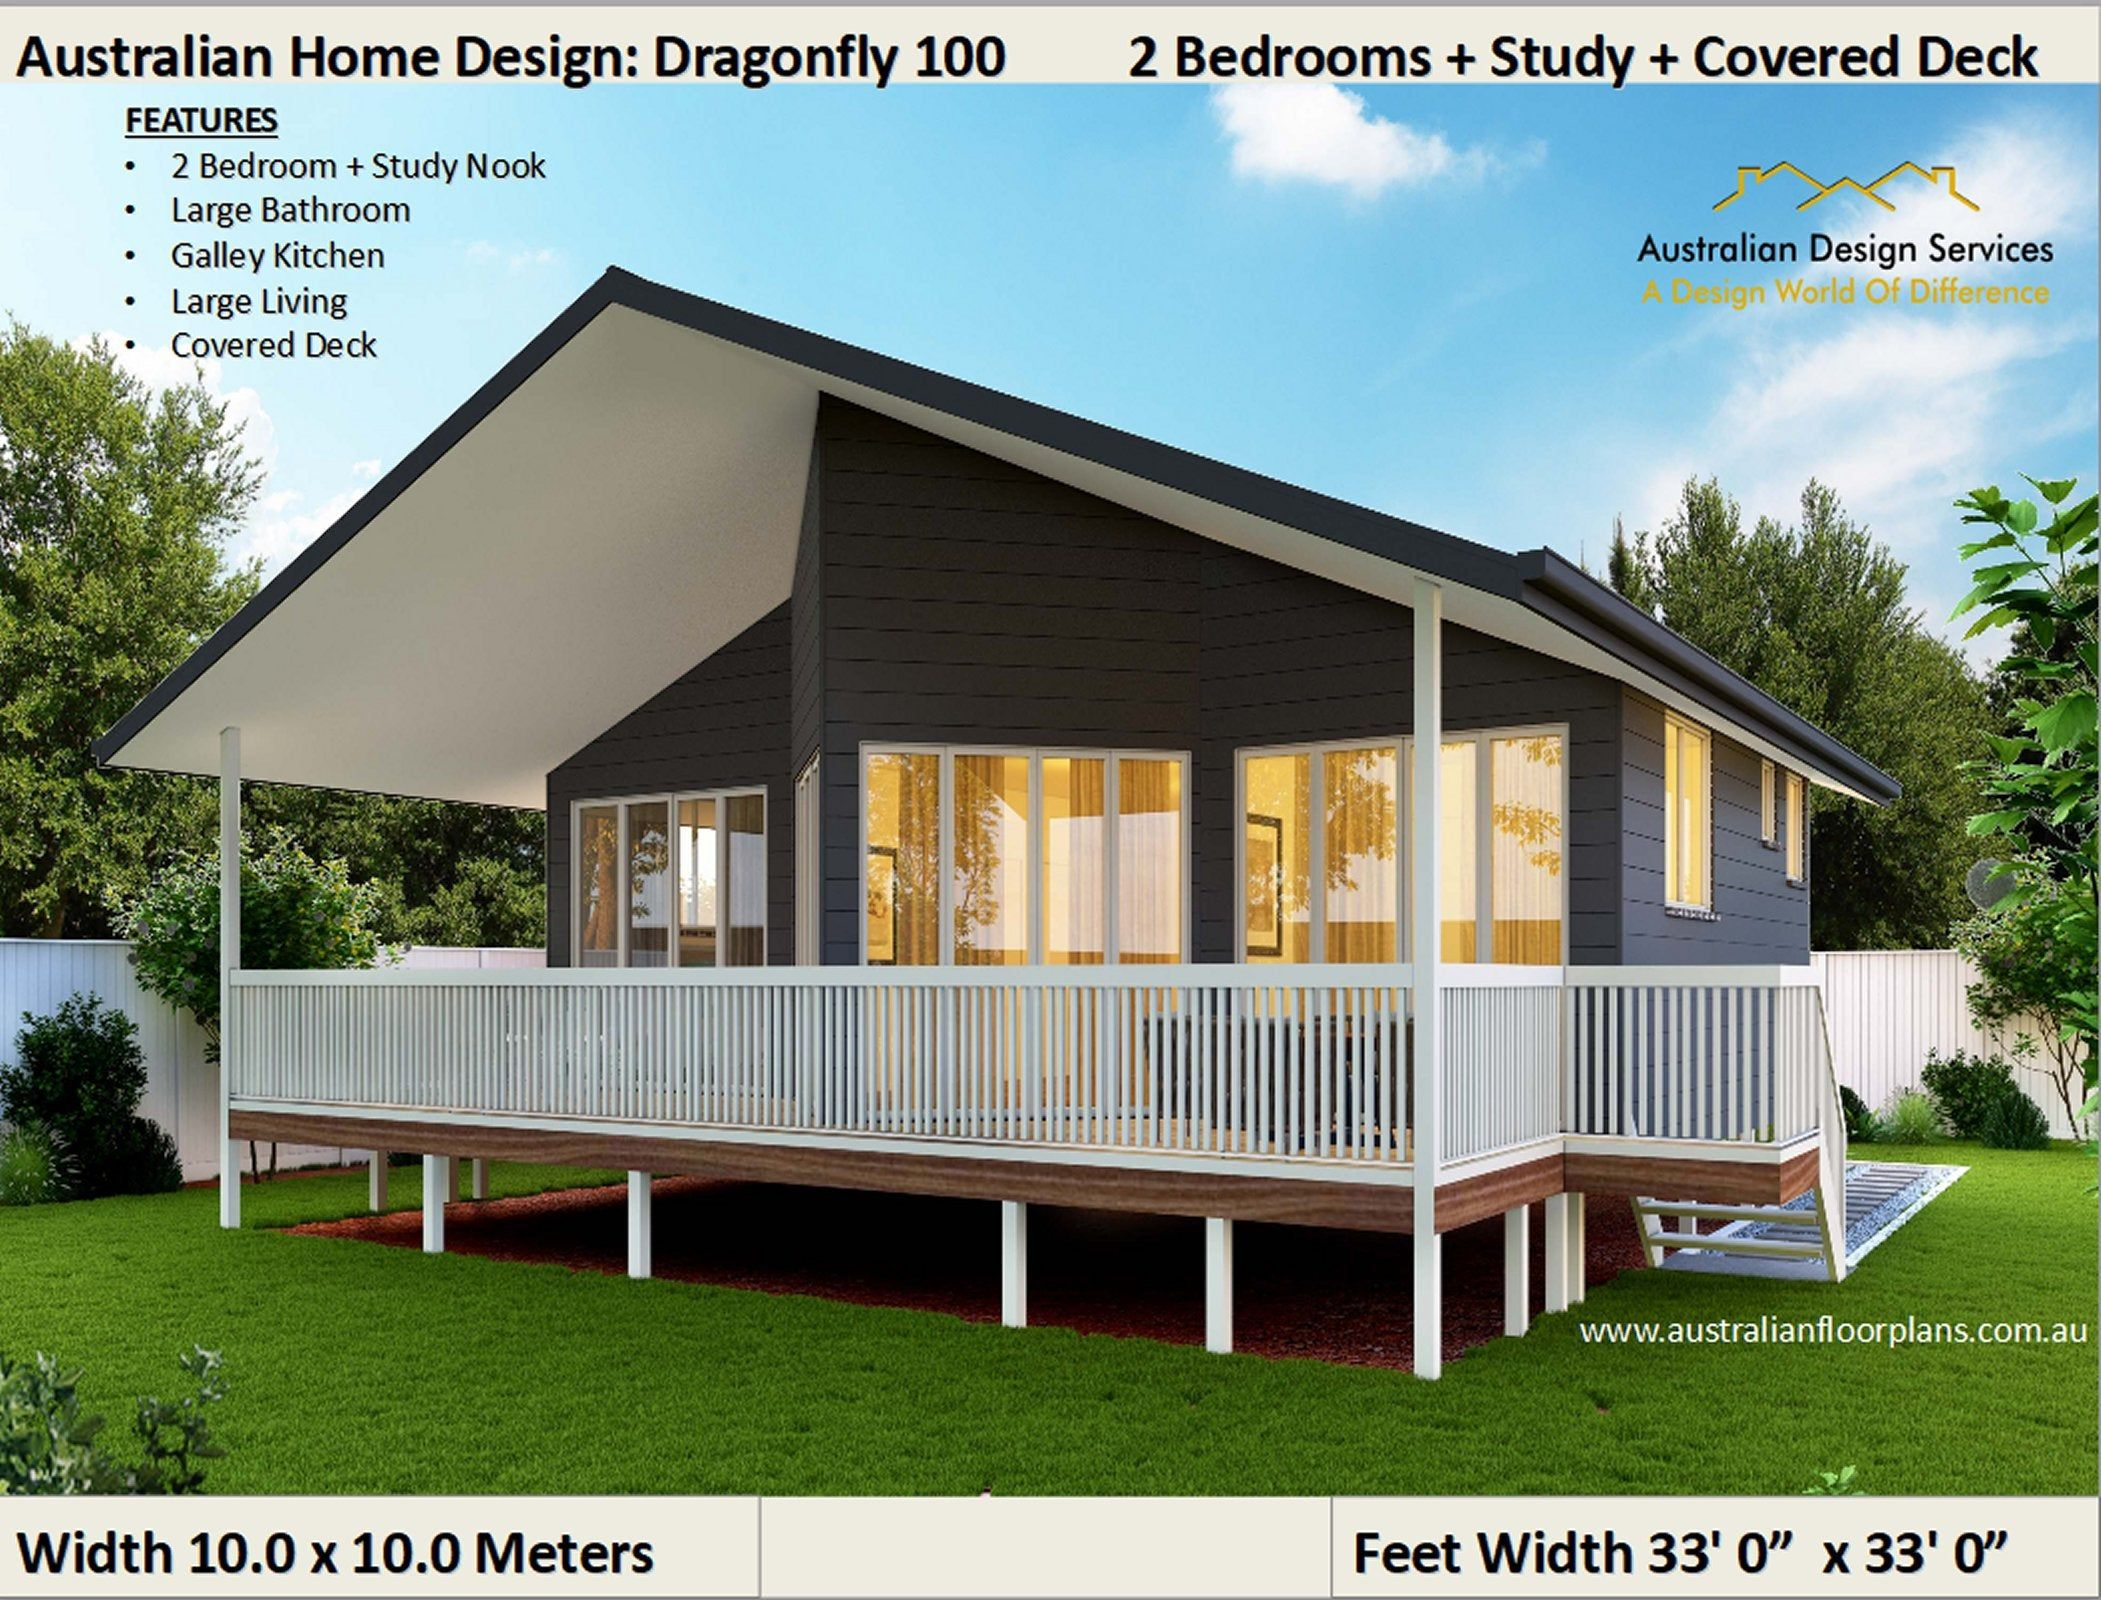 Diy Granny Flat 2 Bed Study Small Home Design Owner Builder Kit Home Plans On Timber Floor 100m Small House Design Small Cottage Homes Small Modular Homes